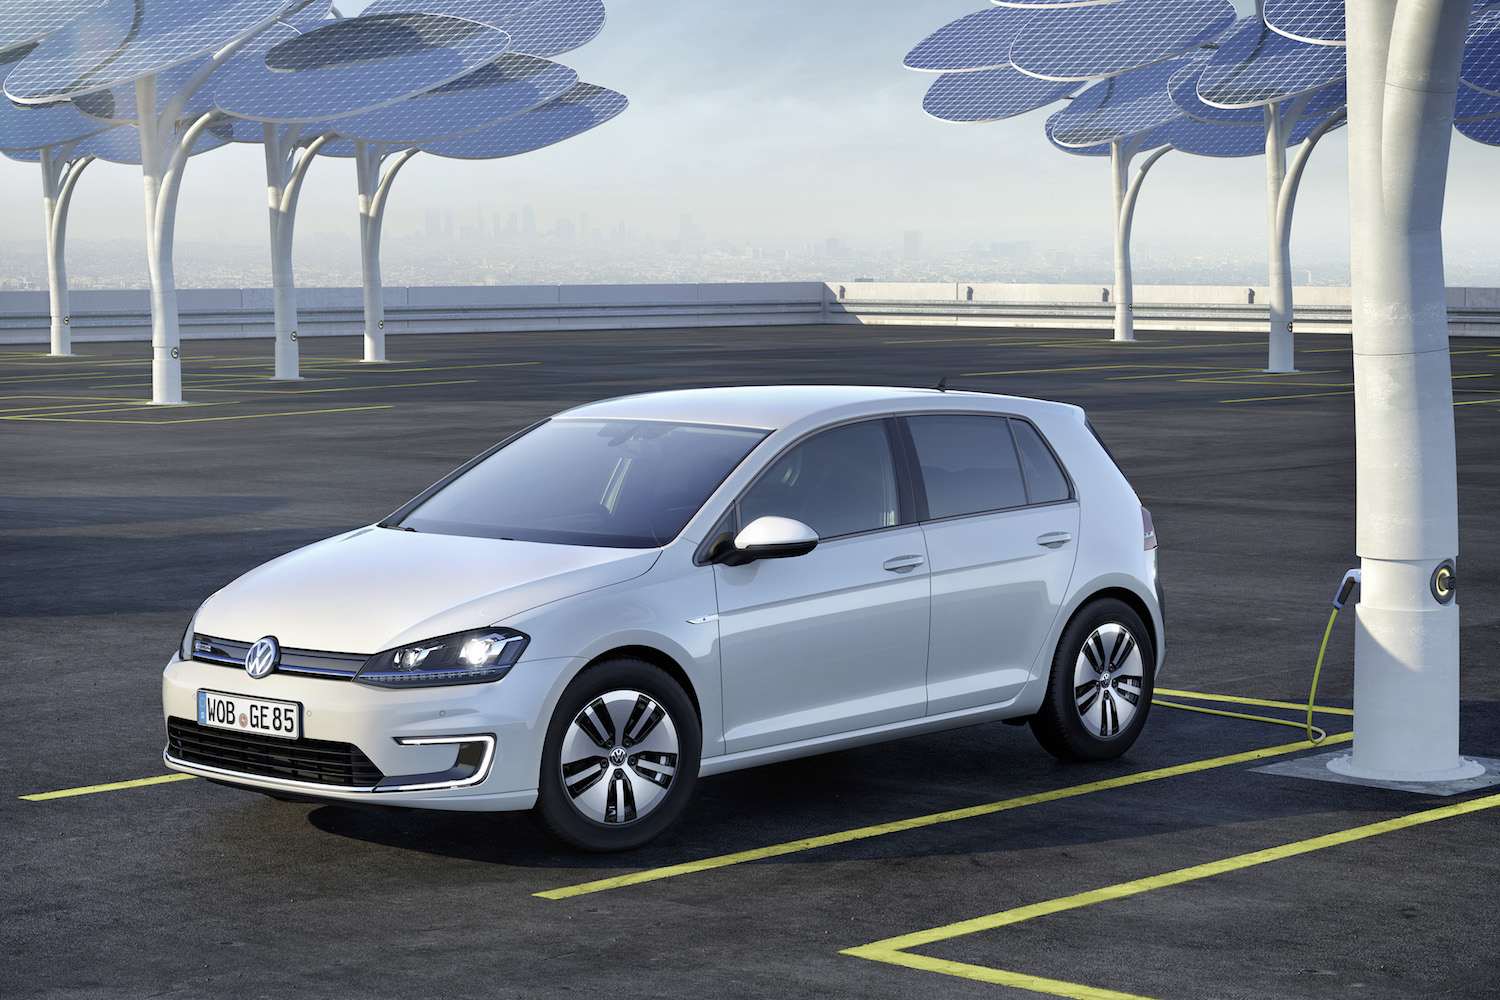 Volkswagen Tdi Mpg 2017 Volkswagen Golf Specs News Rumors Digital Trends